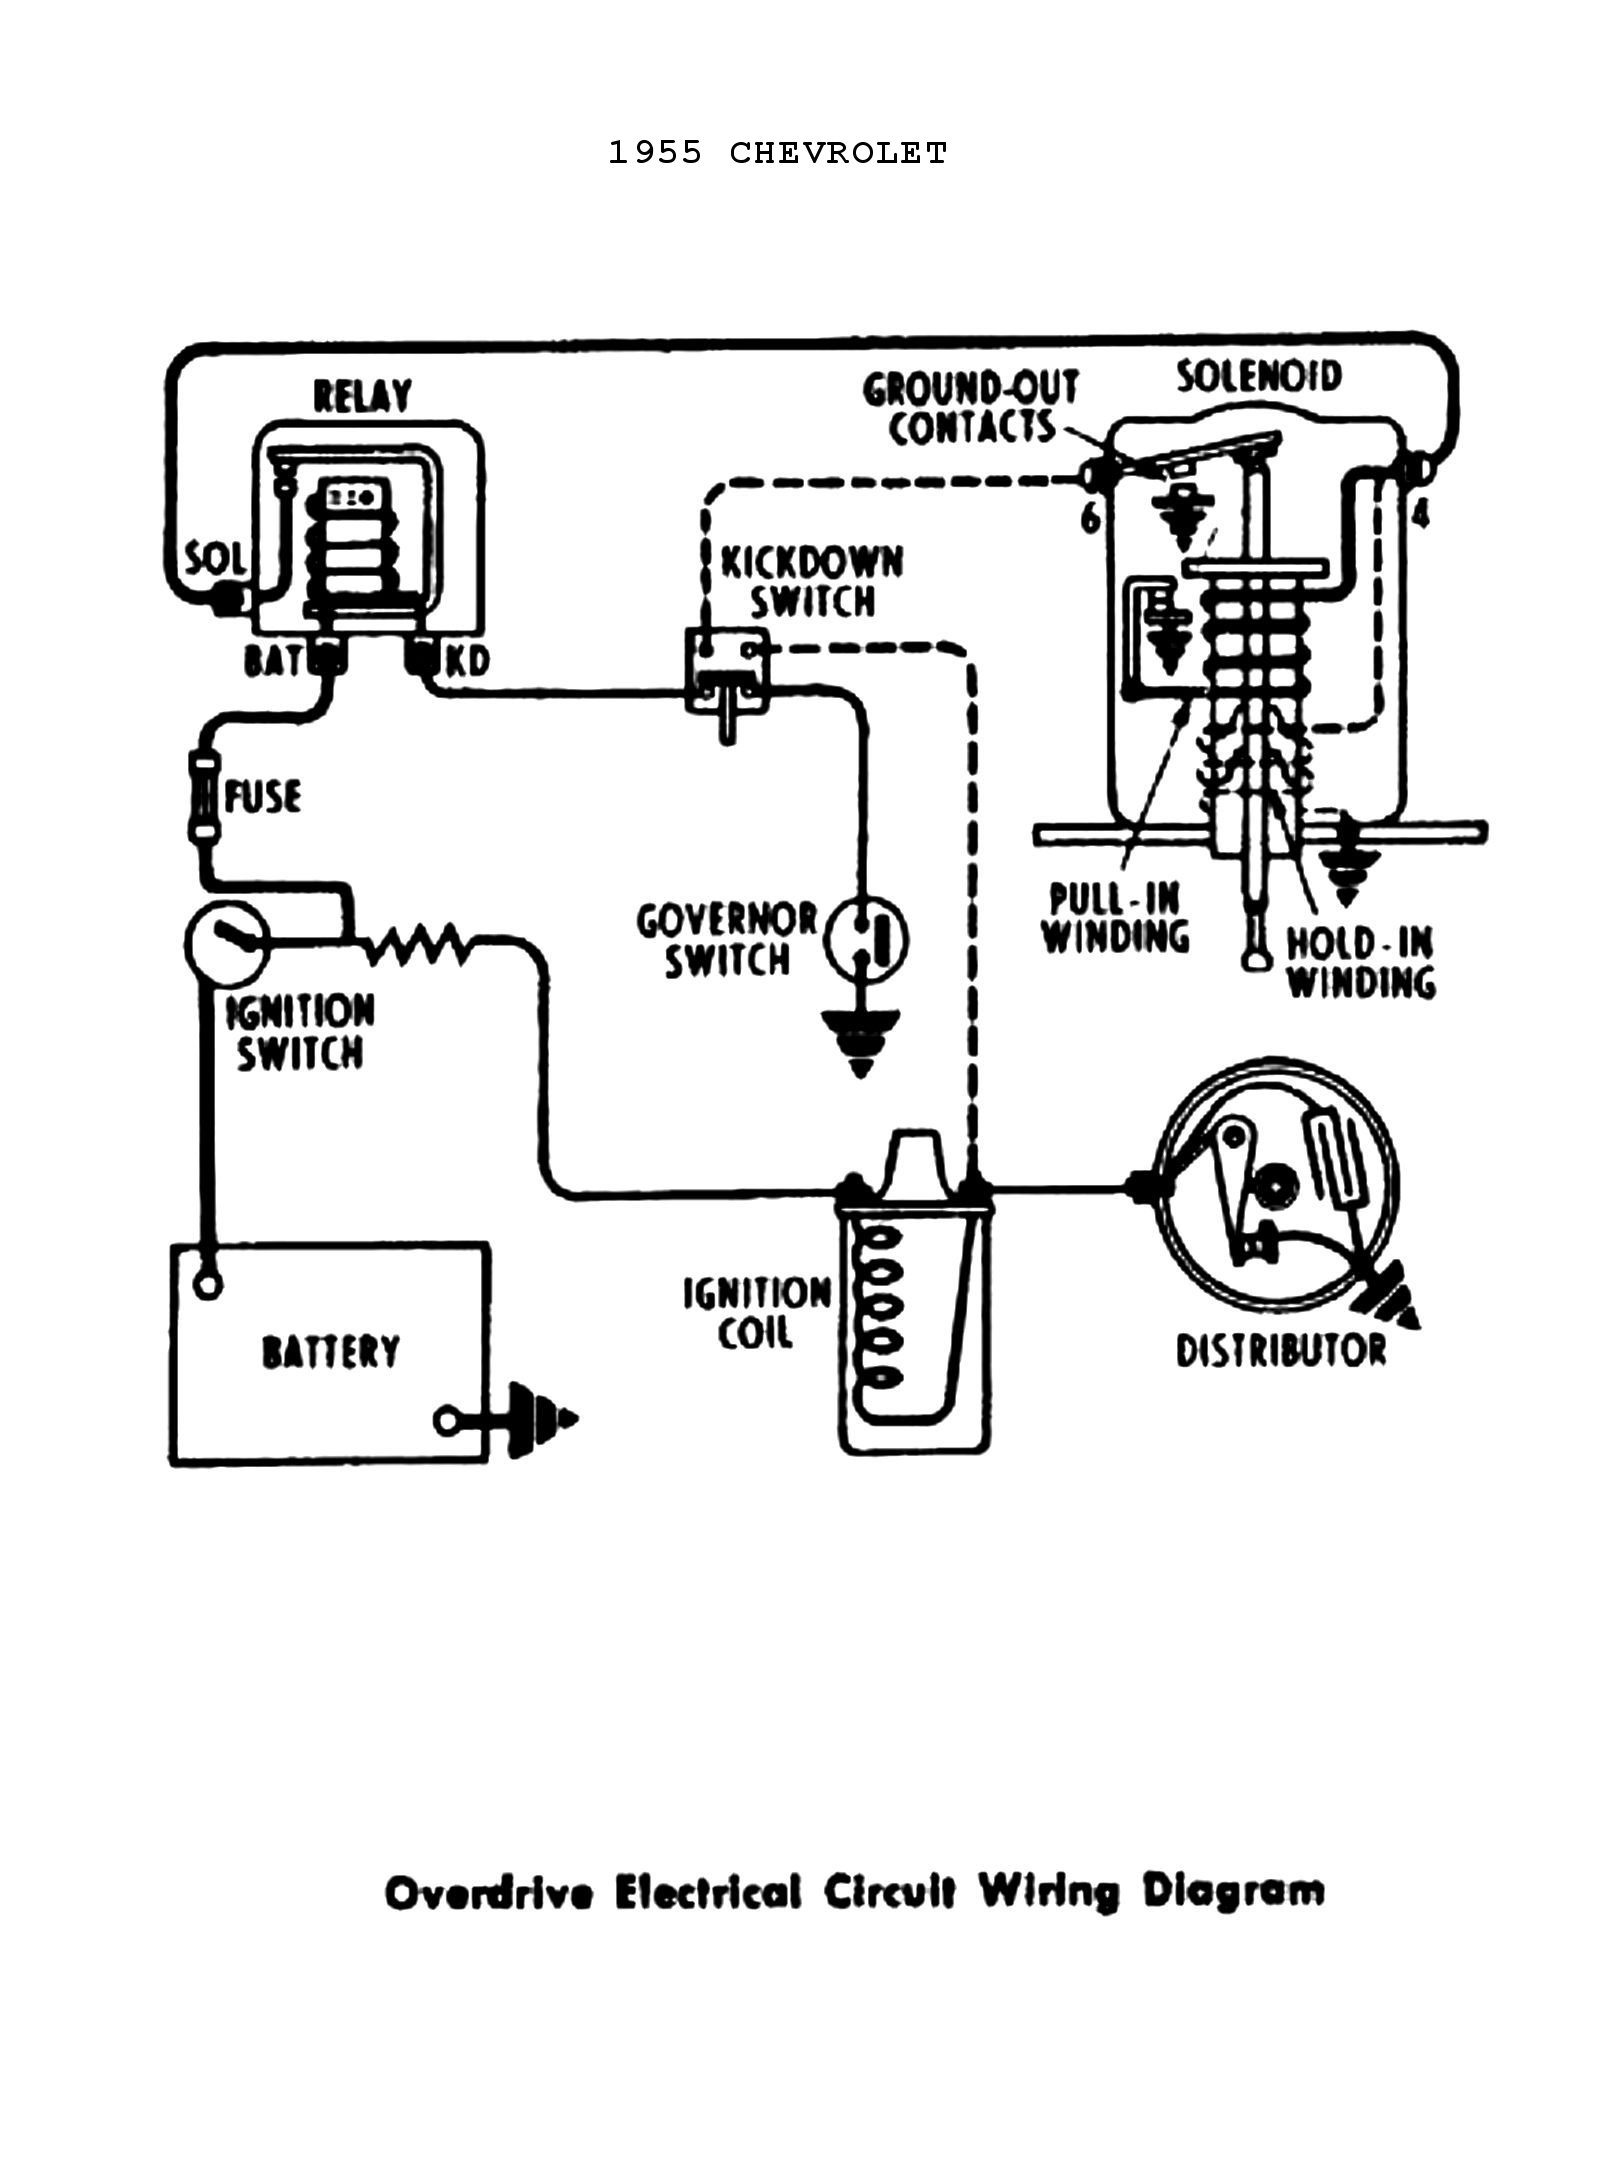 1957 chevy ignition wiring wiring diagram 1970 Chevy Starter Wiring Diagram 1957 chevy ignition wiring diagram gsj bibliofem nl \\u2022chevy wiring diagrams rh chevy oldcarmanualproject com